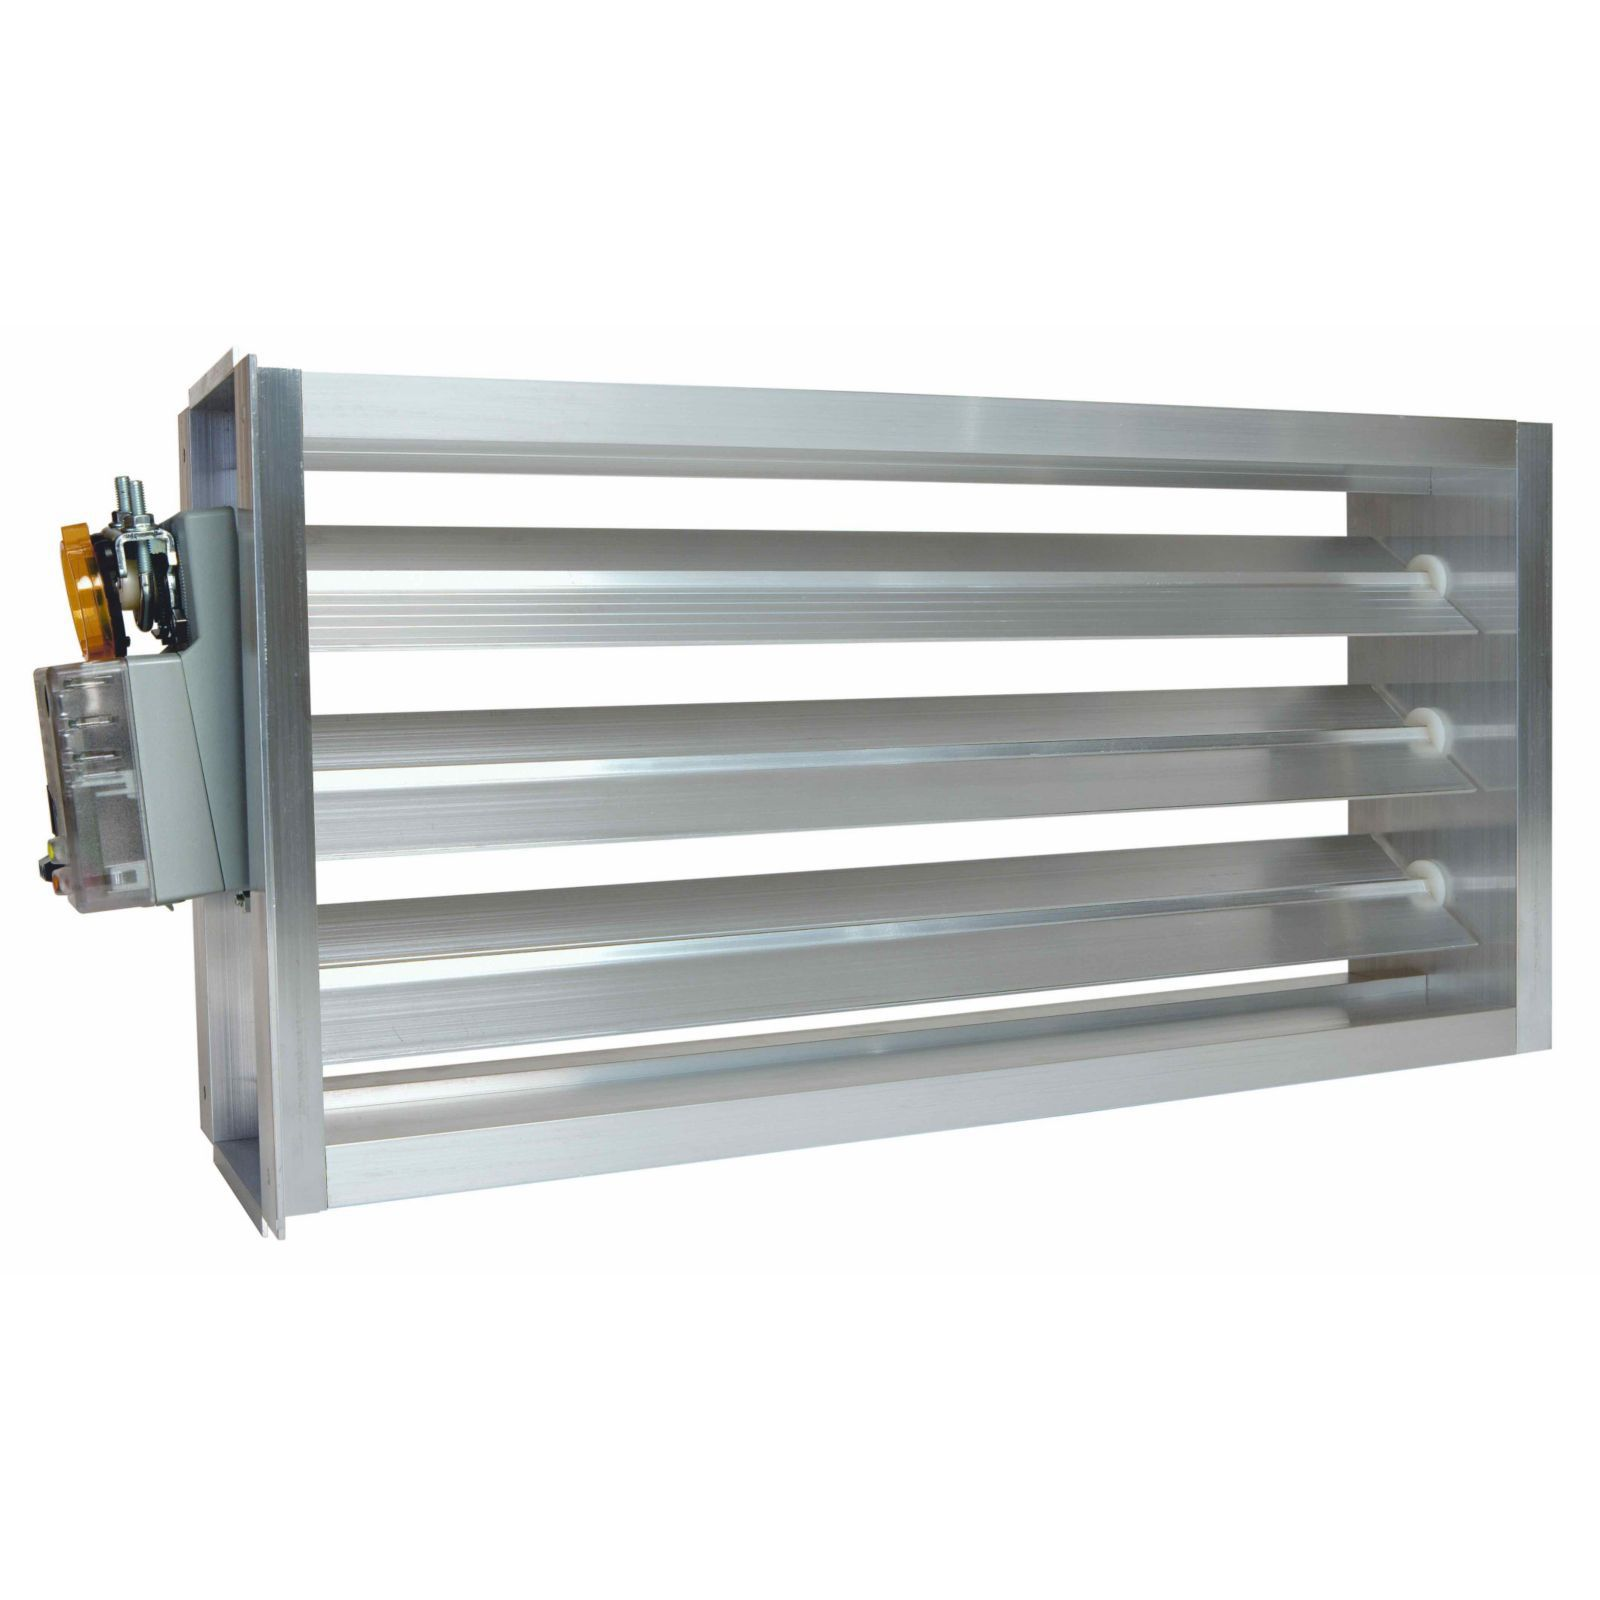 "EWC 20X12 ND - Motorized Ultra-Zone Damper, 20"" X 12"""